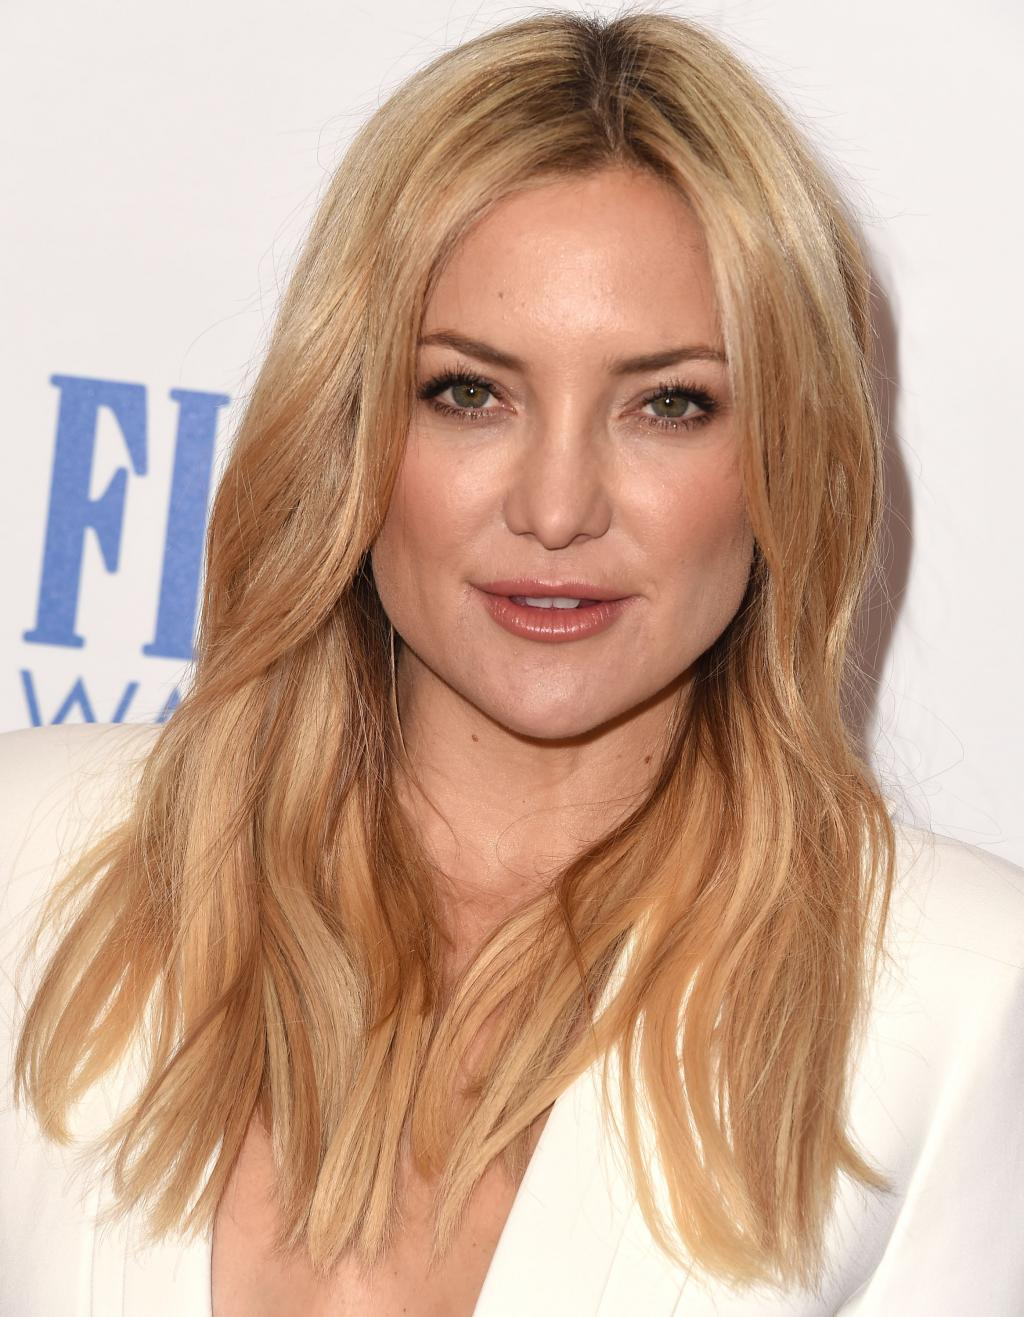 Kate Hudson Debuts A Short Haircut At The Golden Globes - SELF